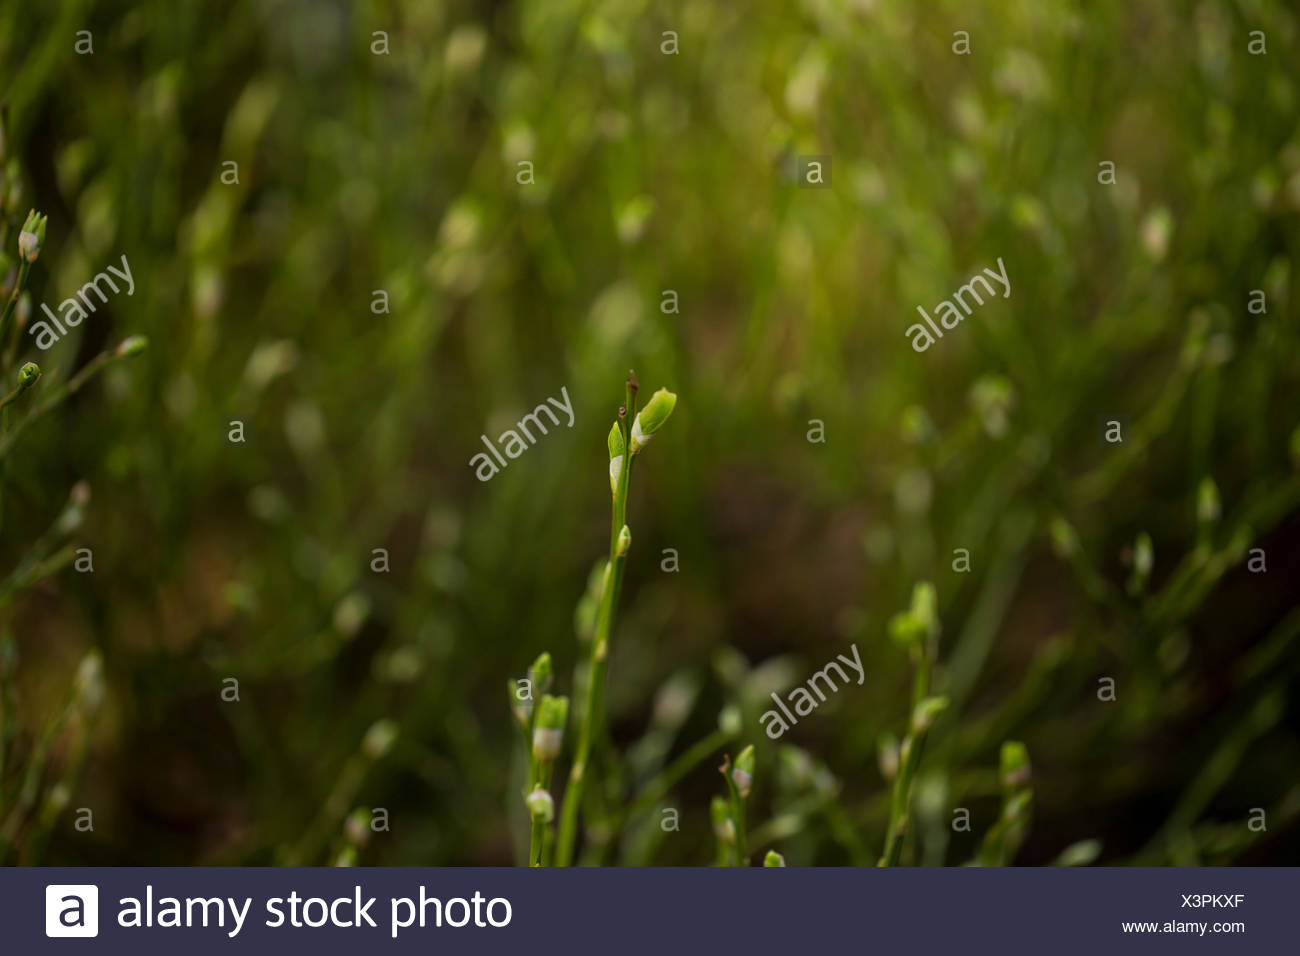 Green bushes. Rhoen Mountains, Germany - Stock Image